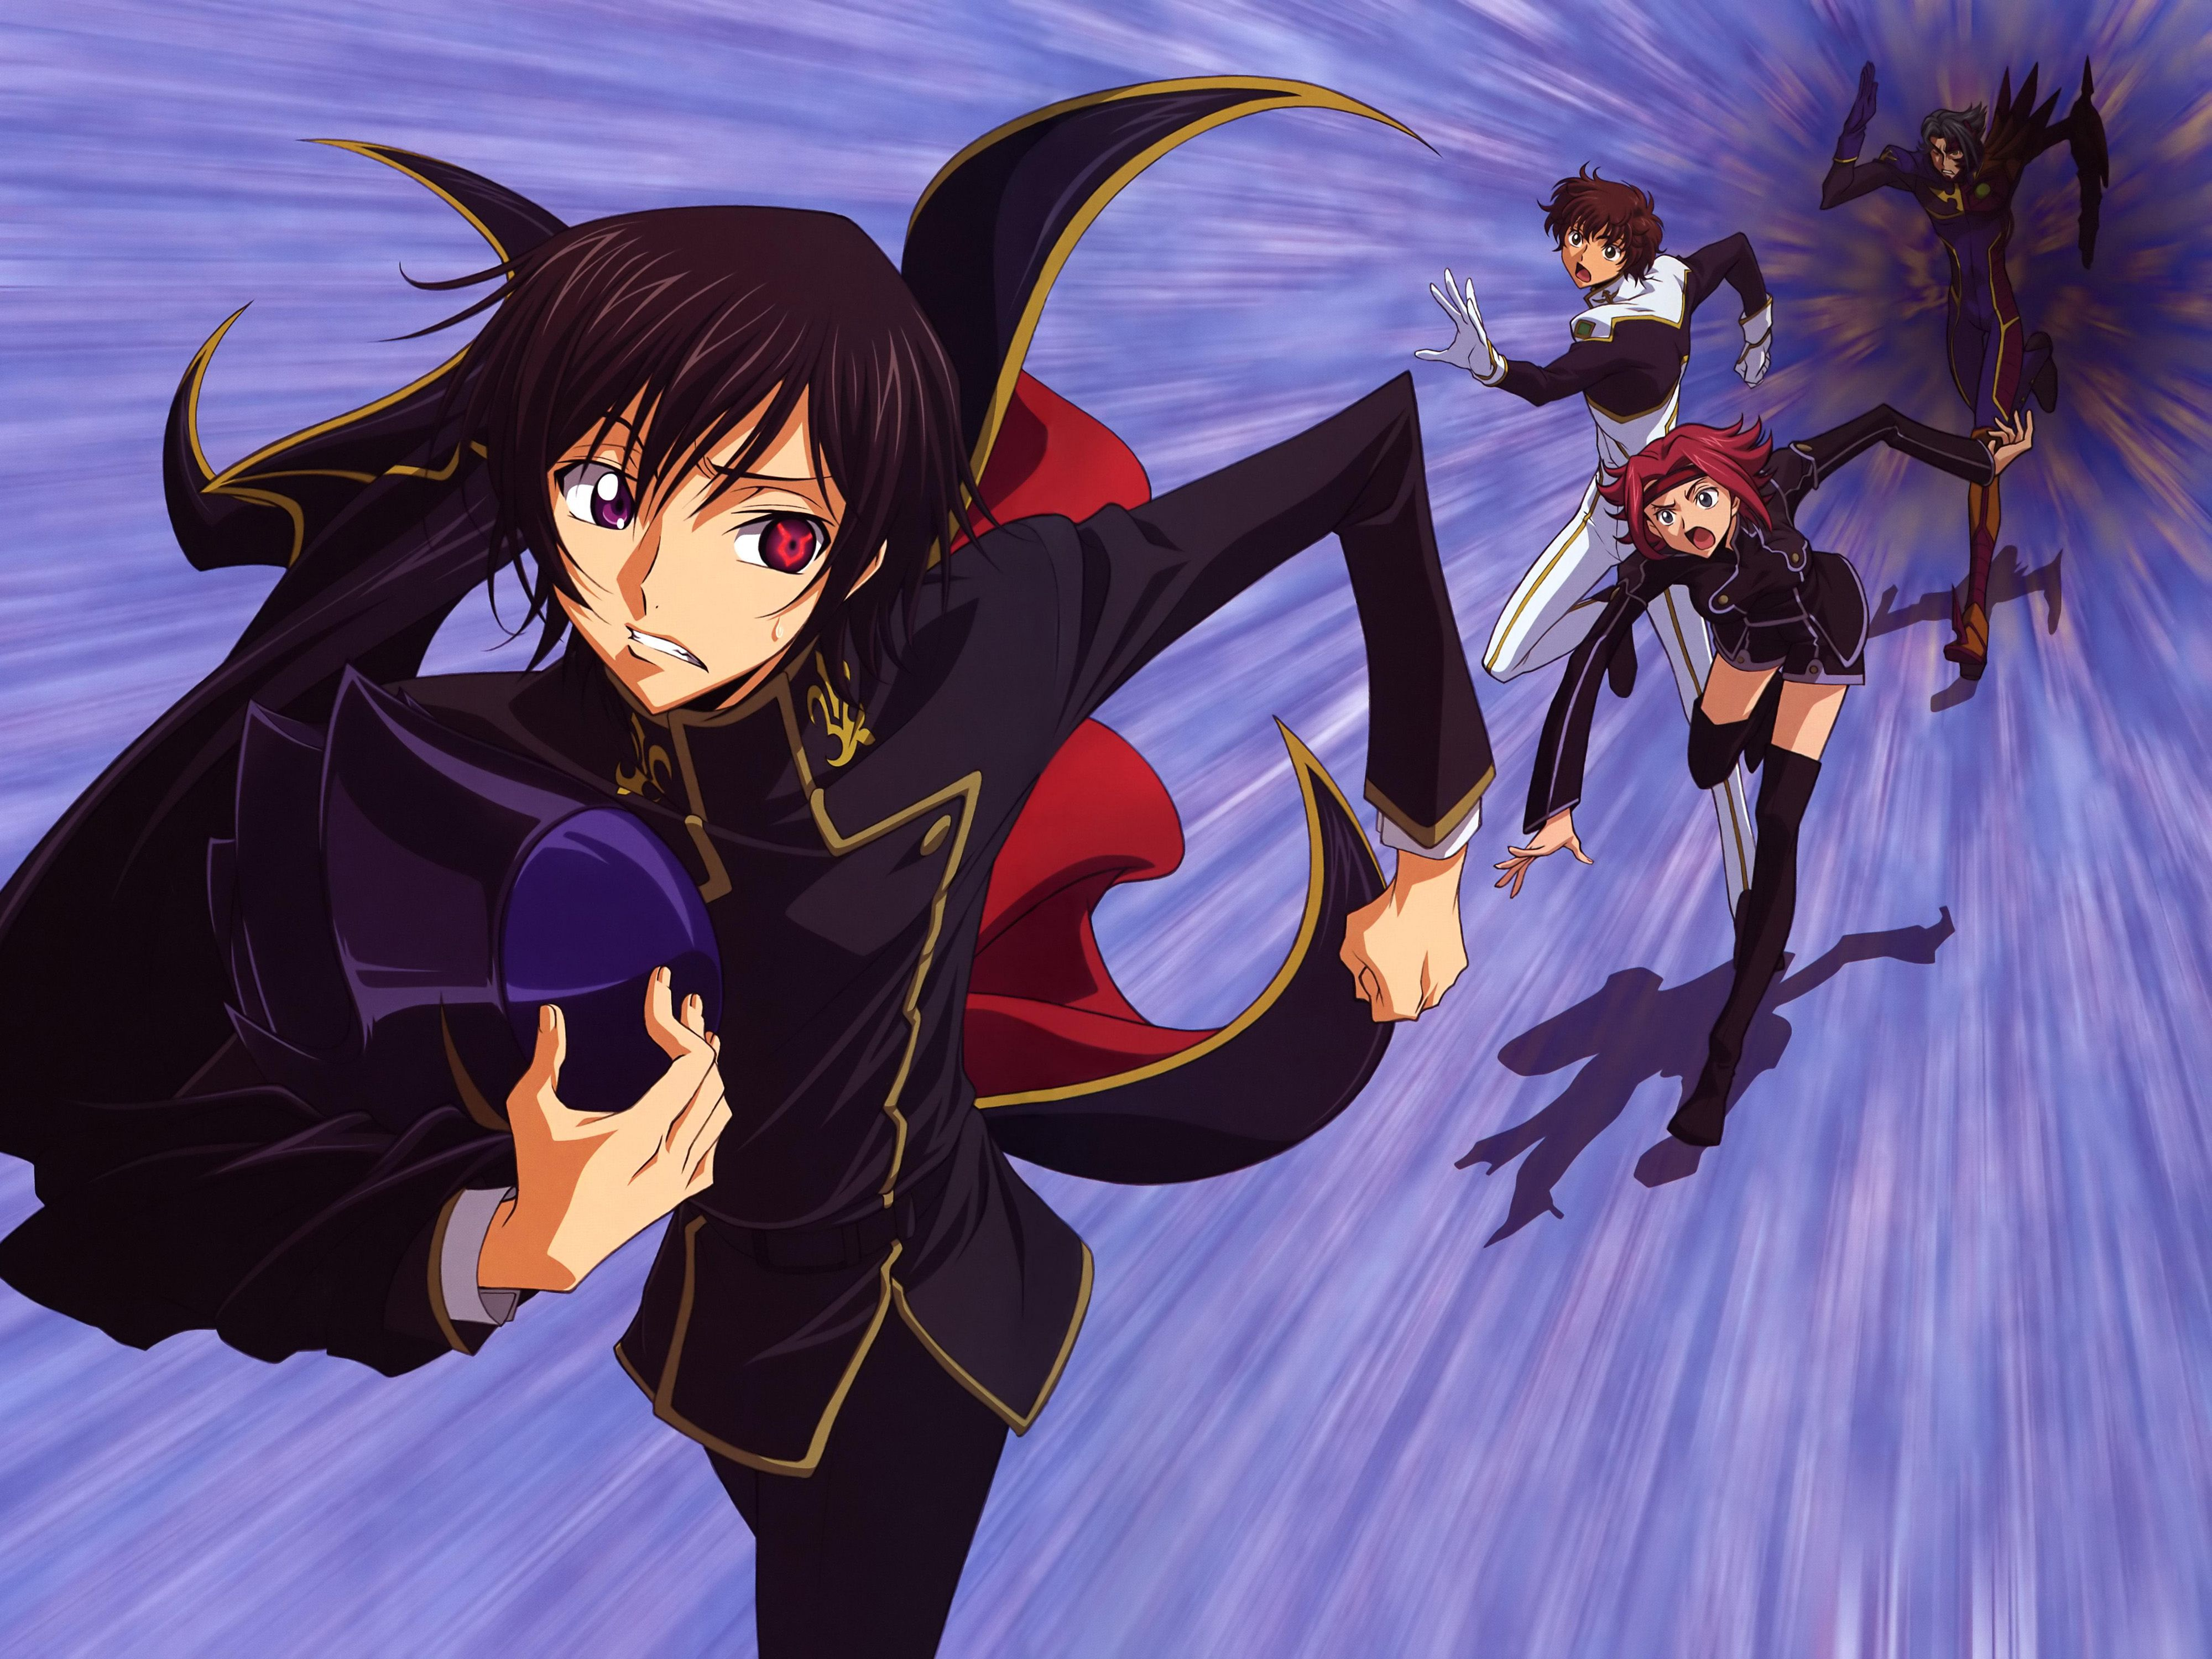 Code Geass Wallpapers For Iphone And Android Code Geass Wallpaper Code Geass Anime